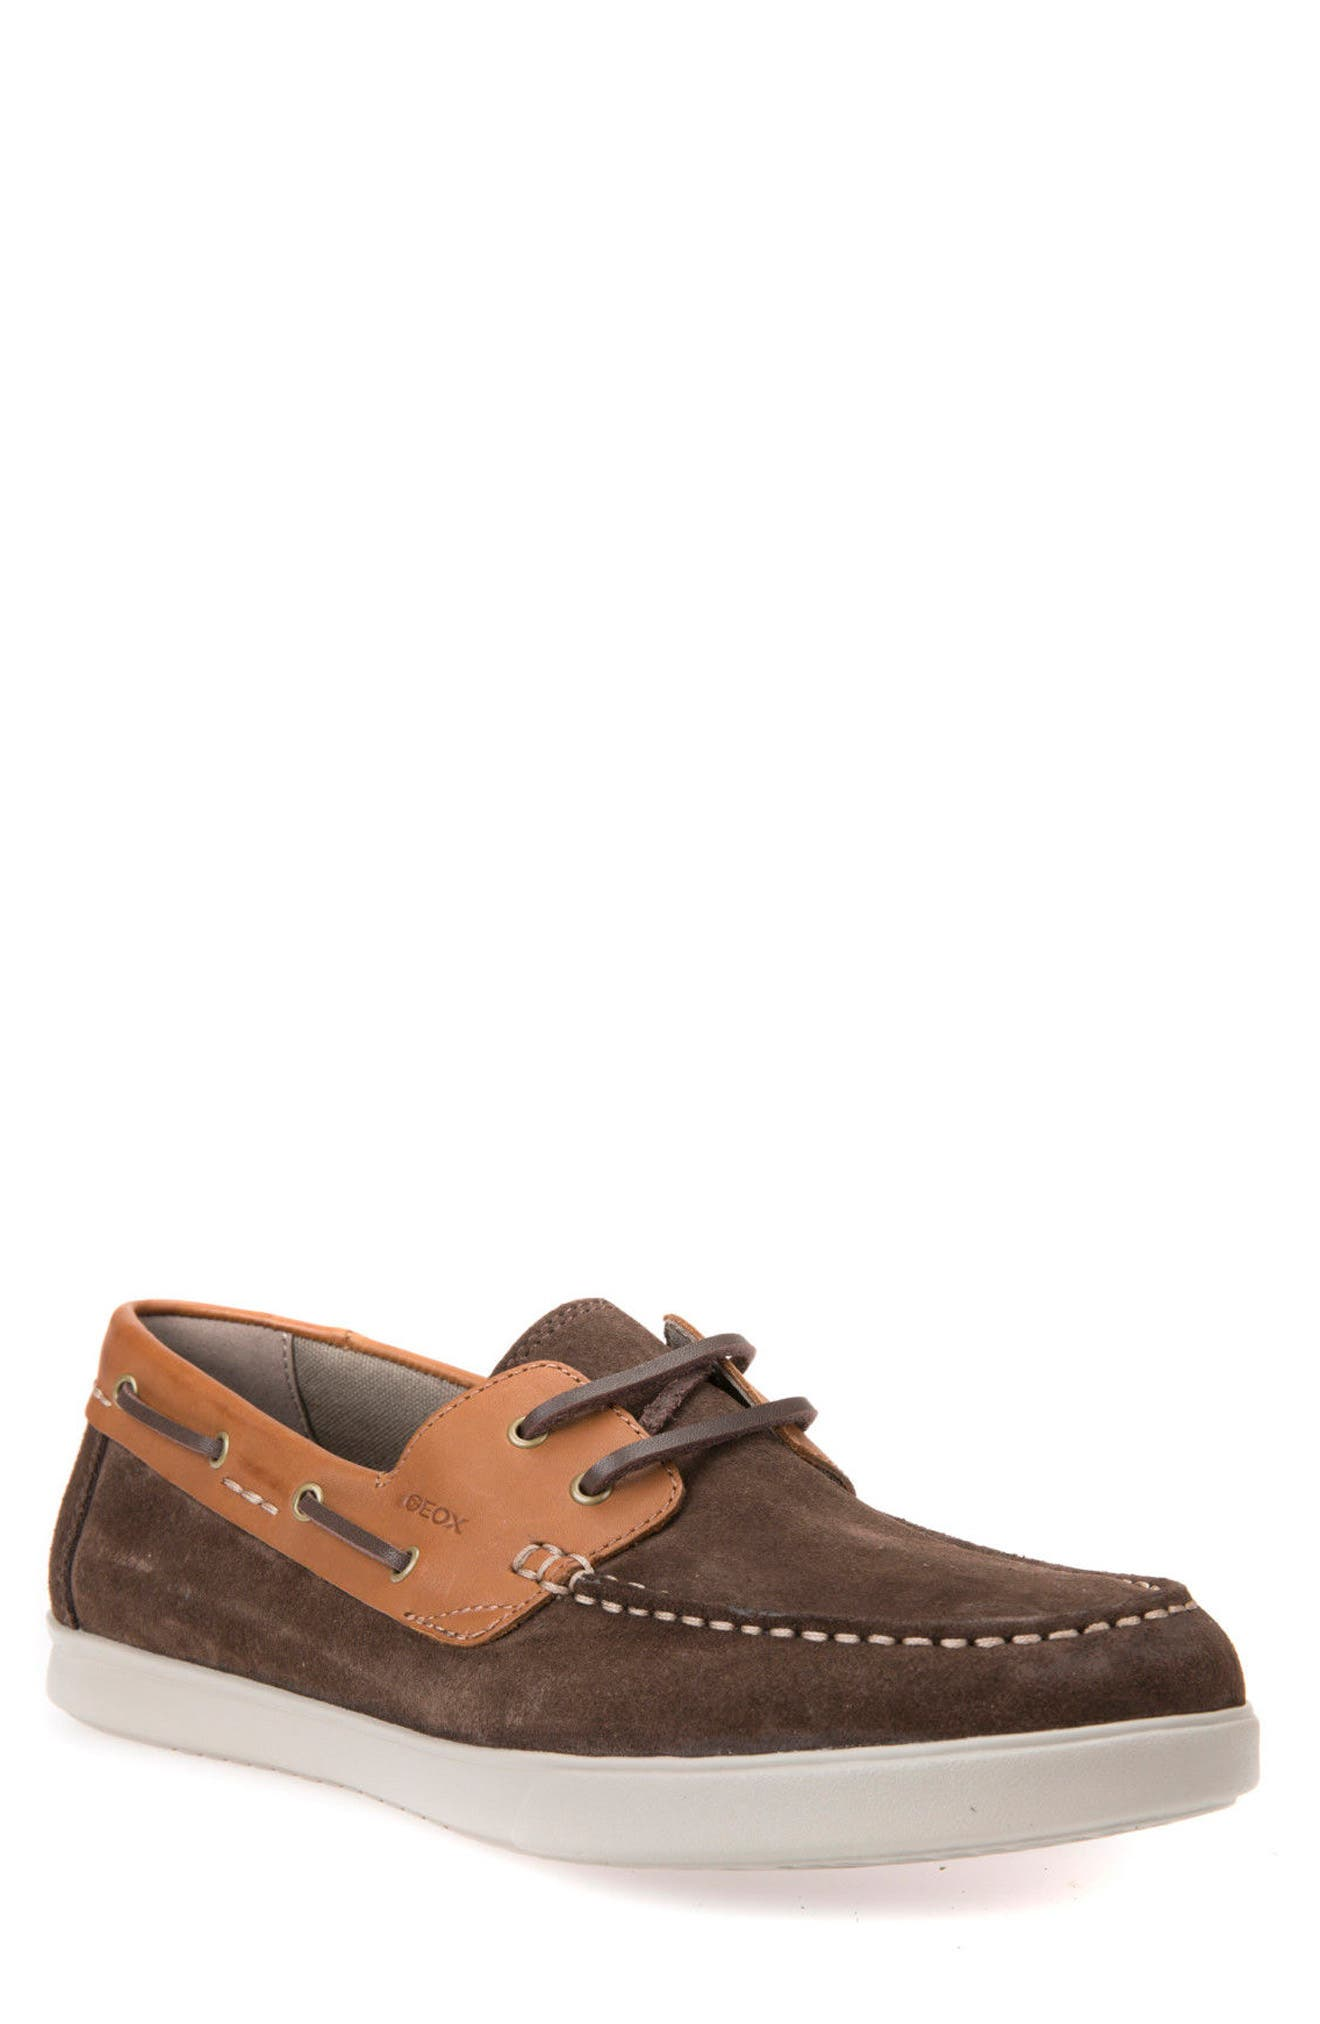 Walee 2 Boat Shoe,                         Main,                         color, 200